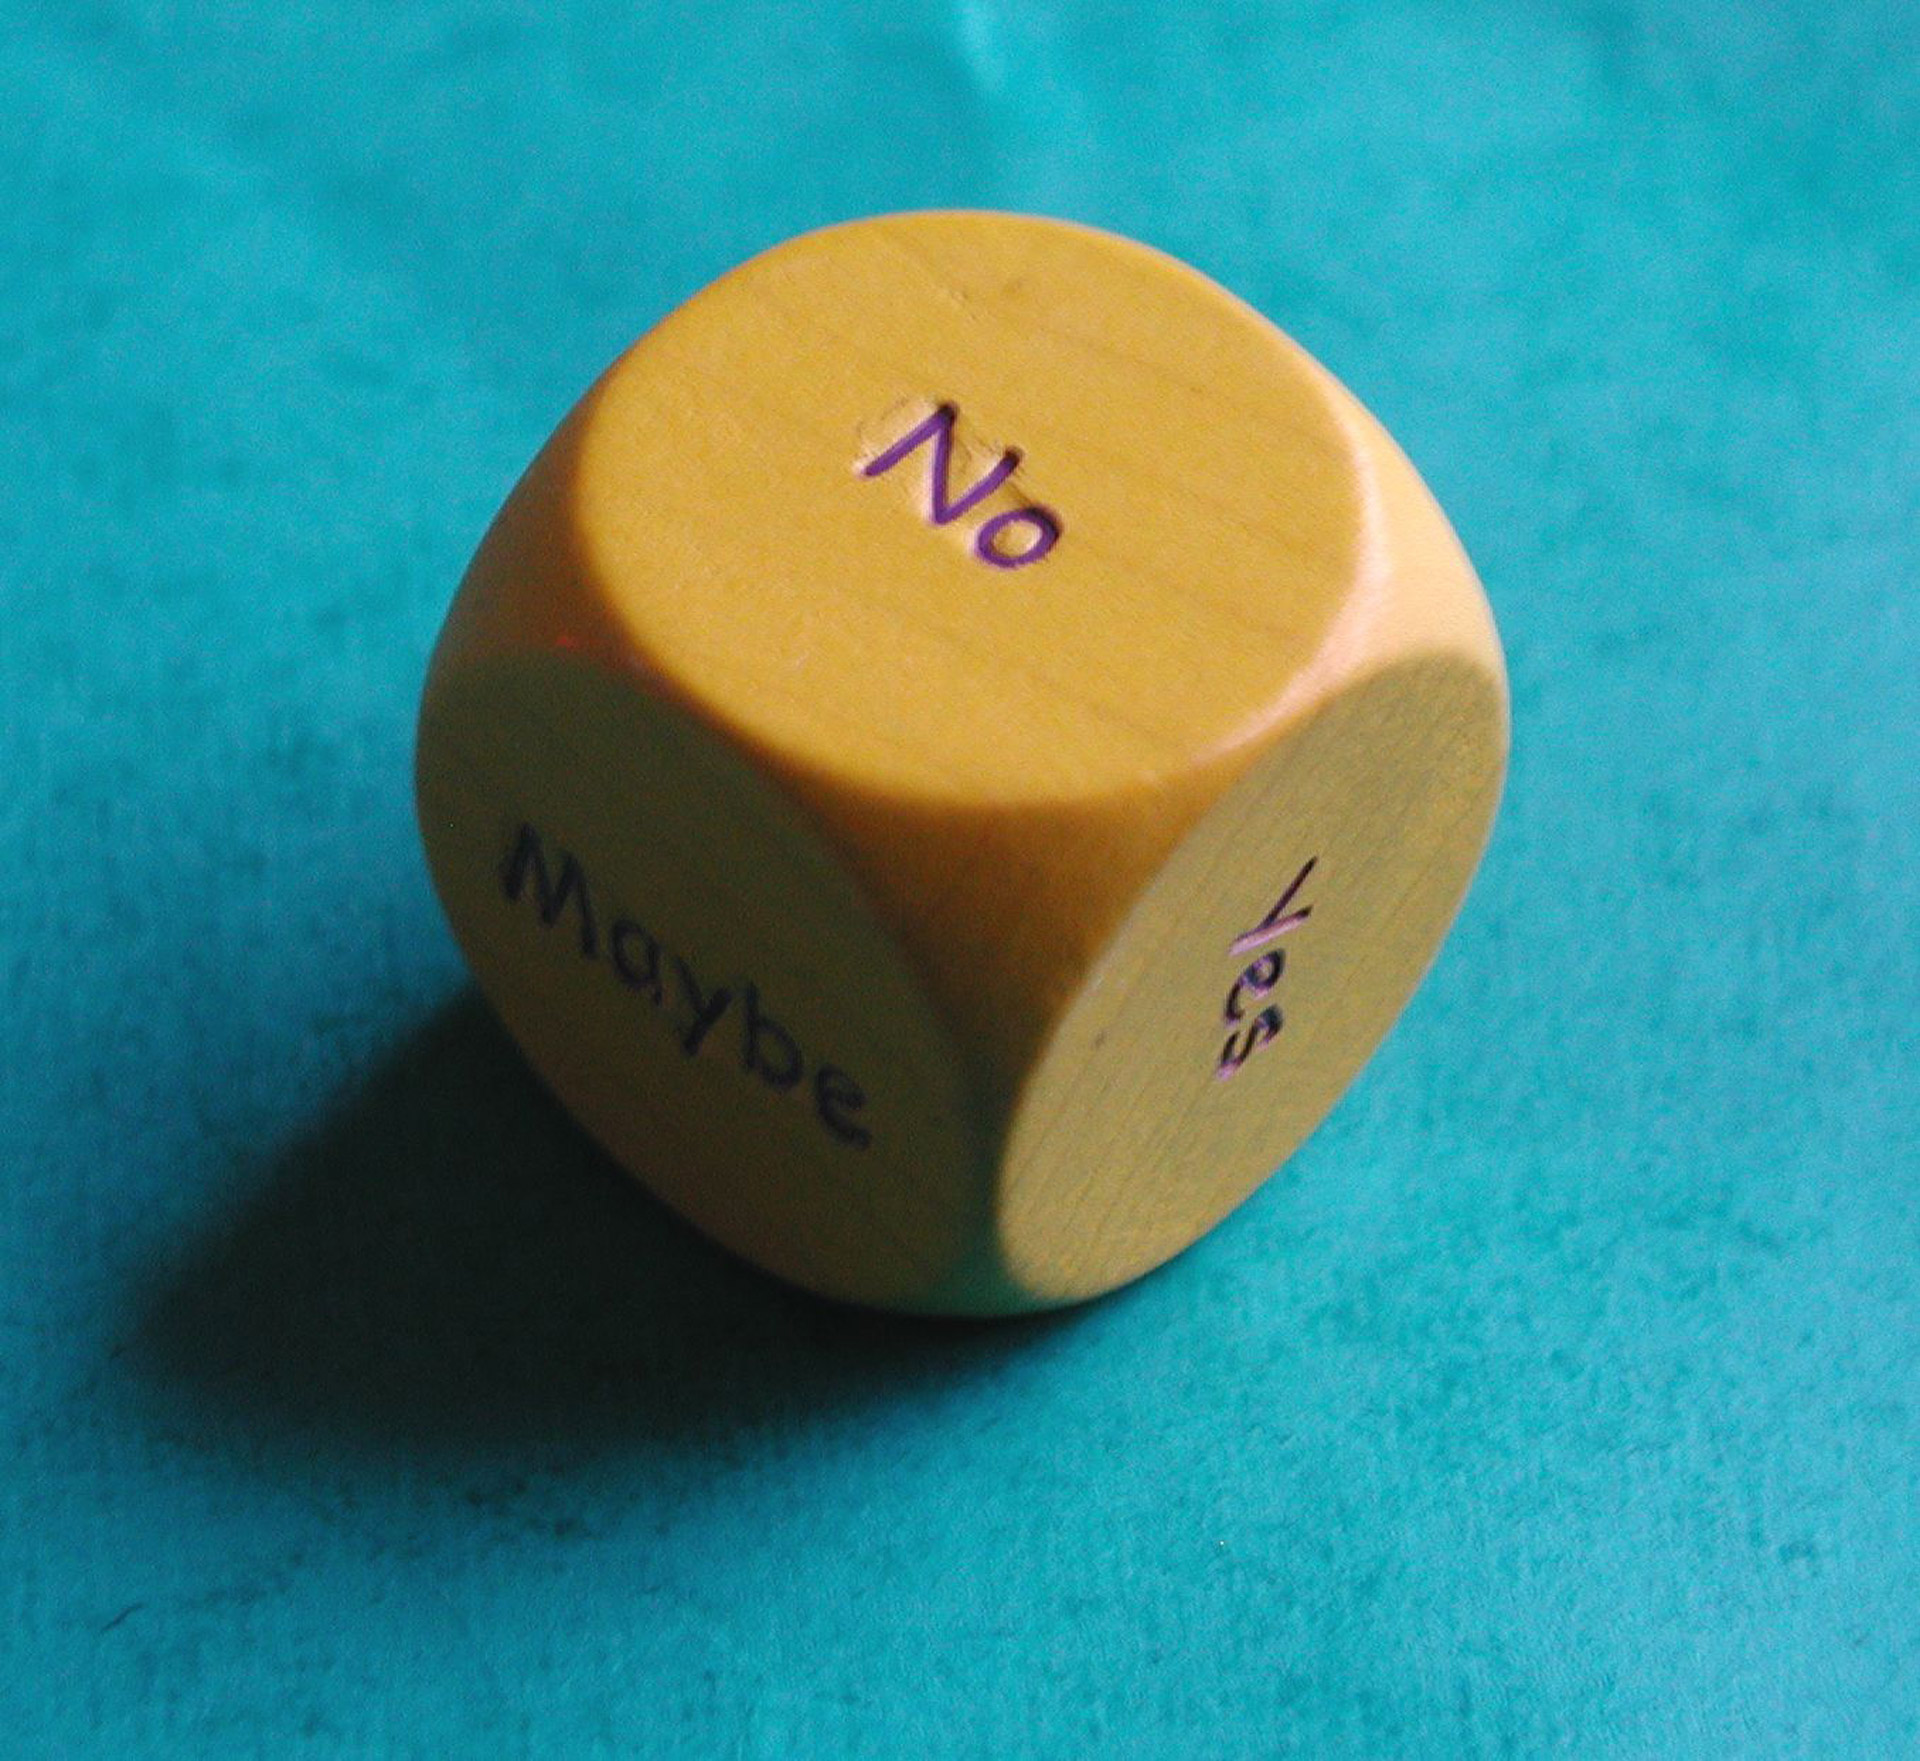 A Dice with the word 'No' on